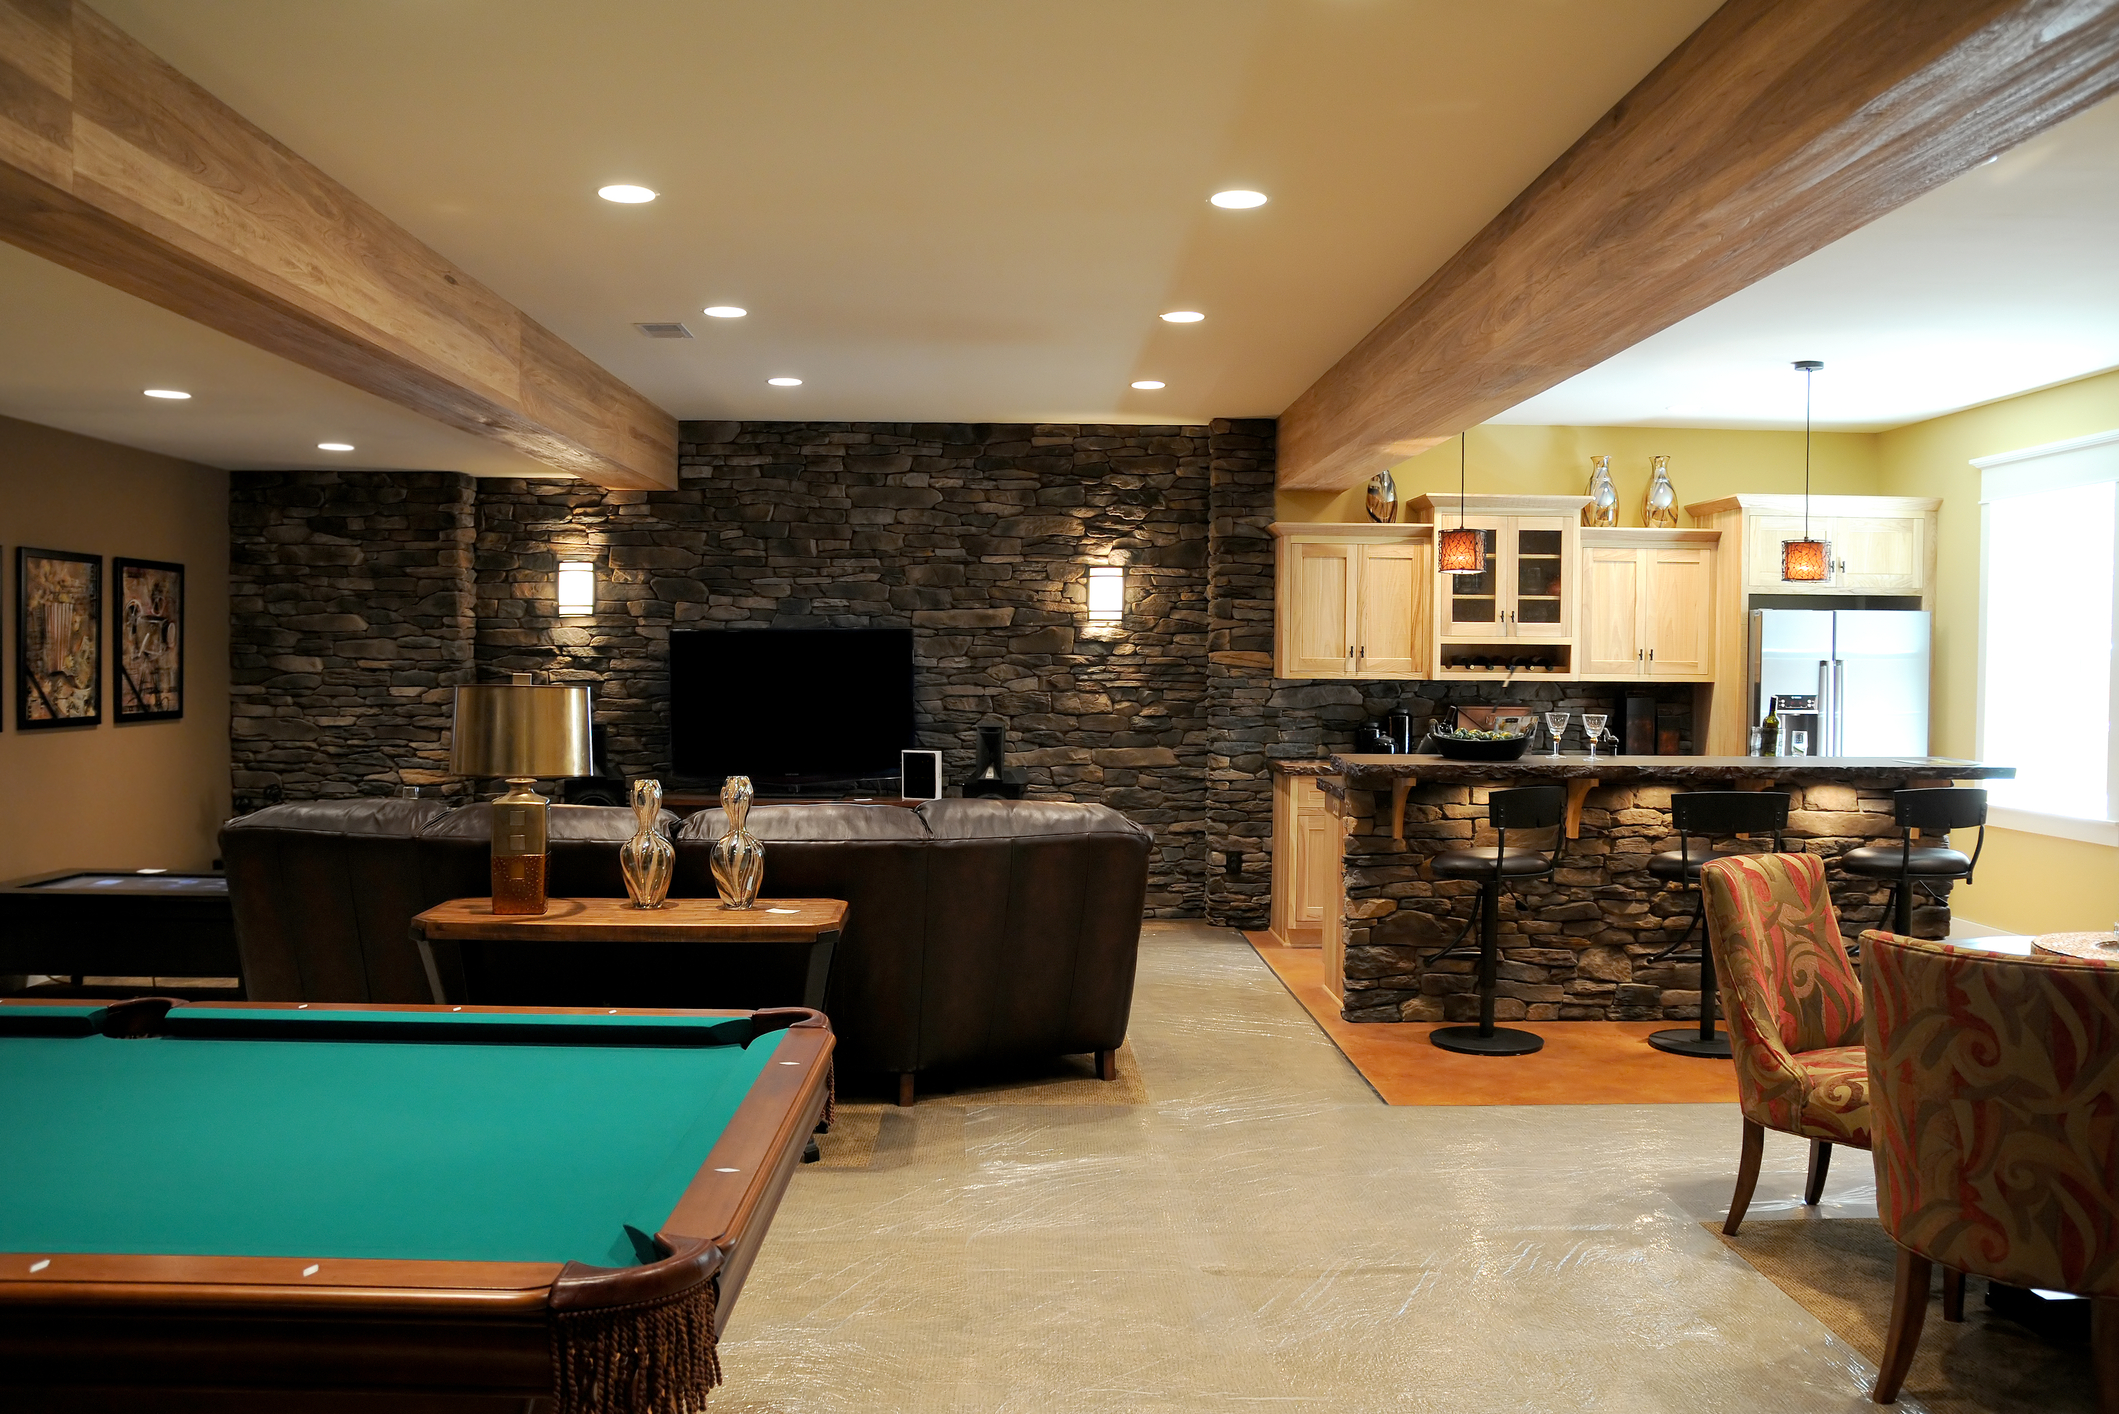 Basement Remodeling Designs Ideas Property basement remodeling – basement finish pros